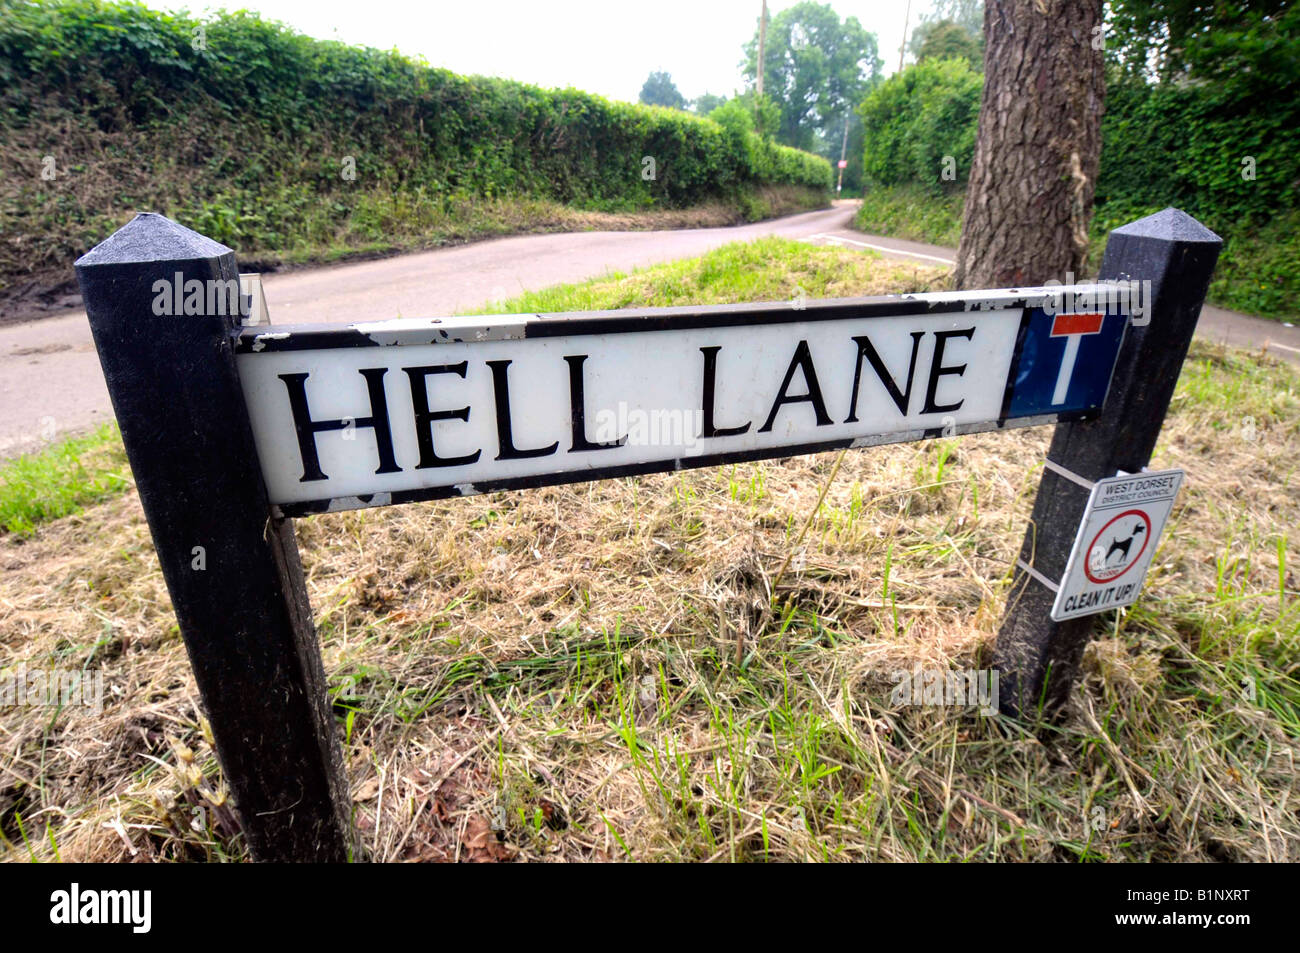 Hell Lane in the village of Chideock, Dorset, Britain, UK - Stock Image